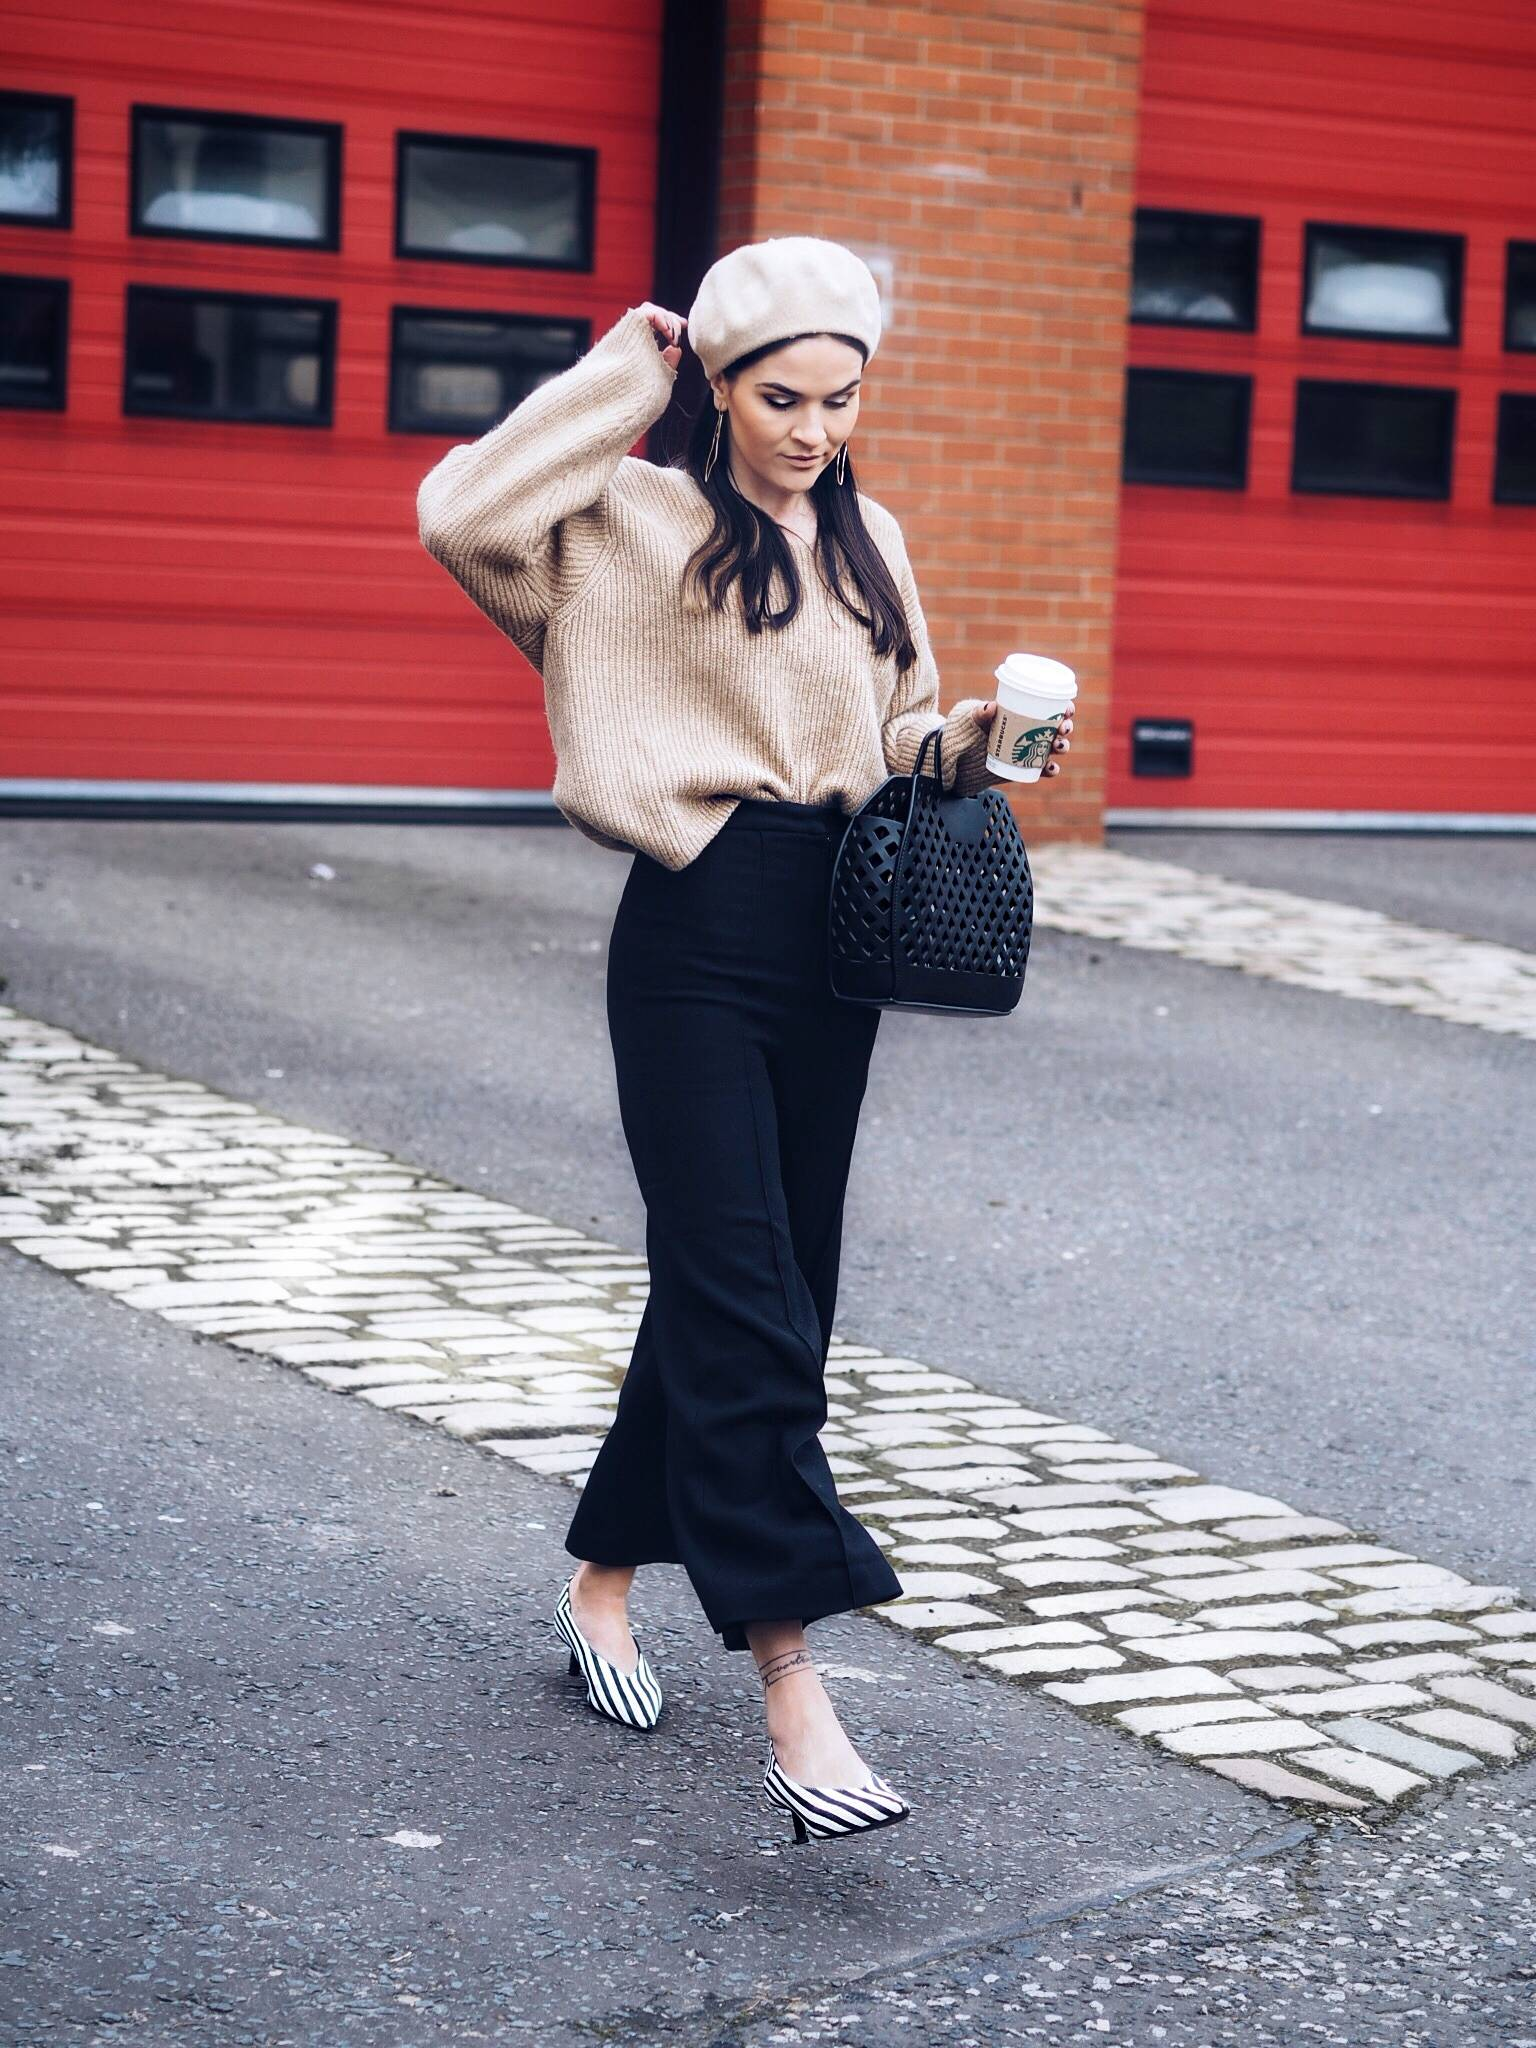 PARISIAN-STYLE-STREET-FASHION-BERET-STYLING-UK-FASHION-BLOGGER-LAFOTKA